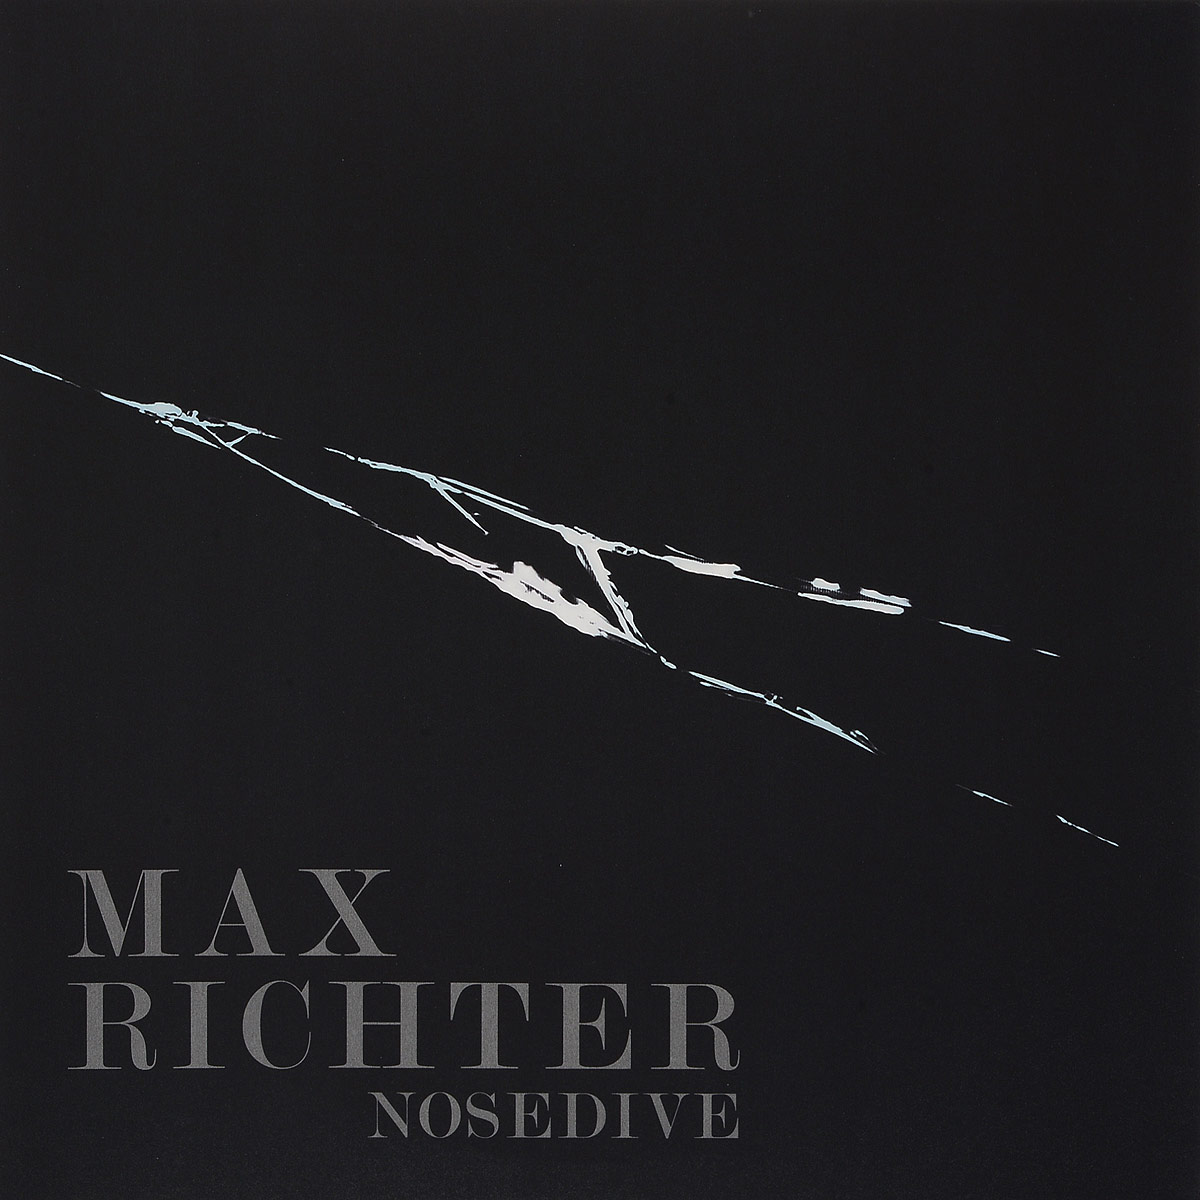 Макс Рихтер Max Richter. Nosedive (LP) max richter max richter from sleep 2 lp 180 gr transparent